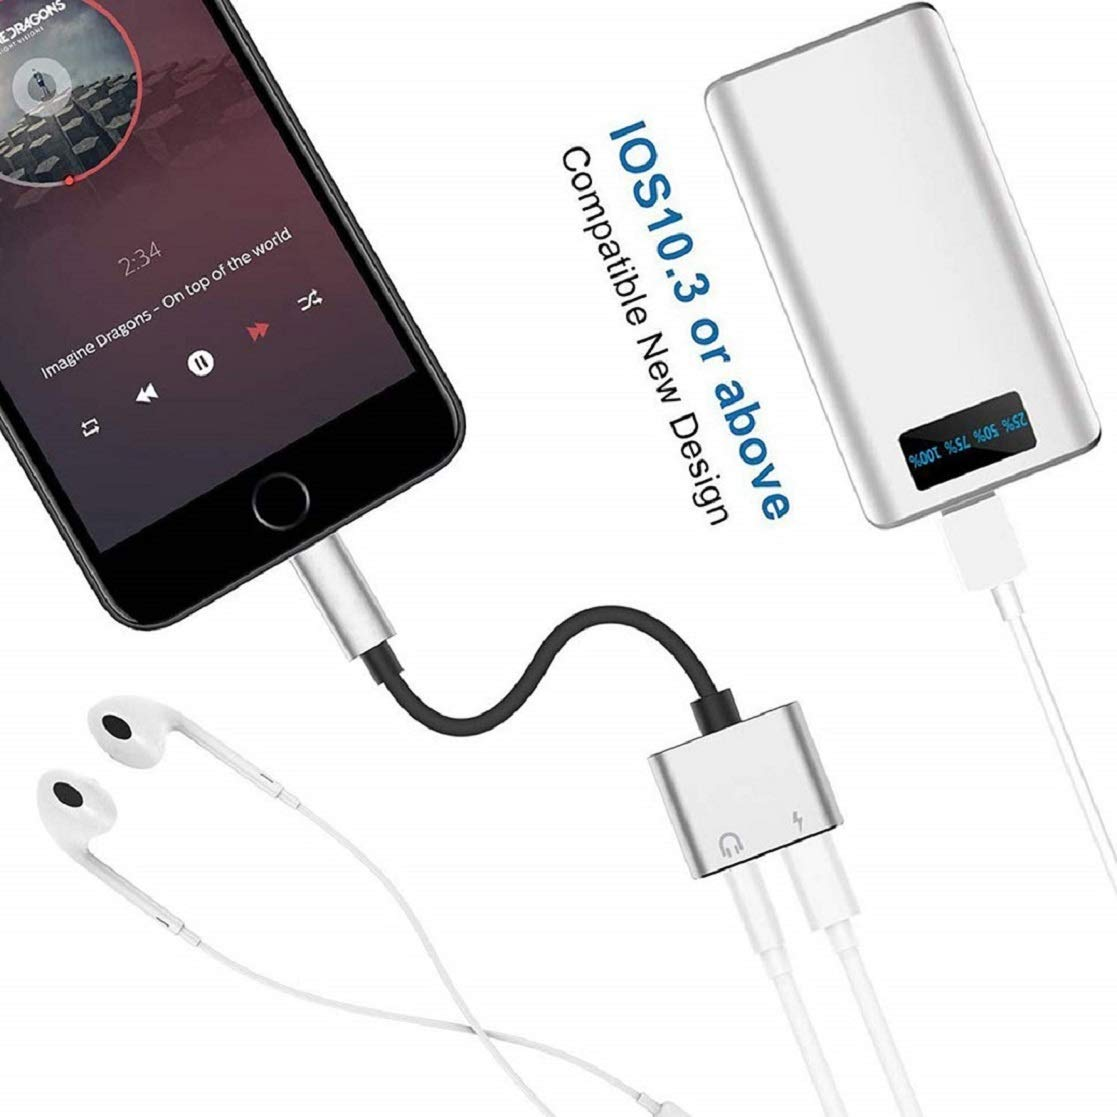 Headphone Adapter for iPhone X//XS//XS MAX//XR//8// 8Plus// 7//7 Plus Aux Headset Jack Dongle Splitter Adaptor Mini Earphone Convertor 2 in 1 Accessories Cables Call Charge Music Wire Control